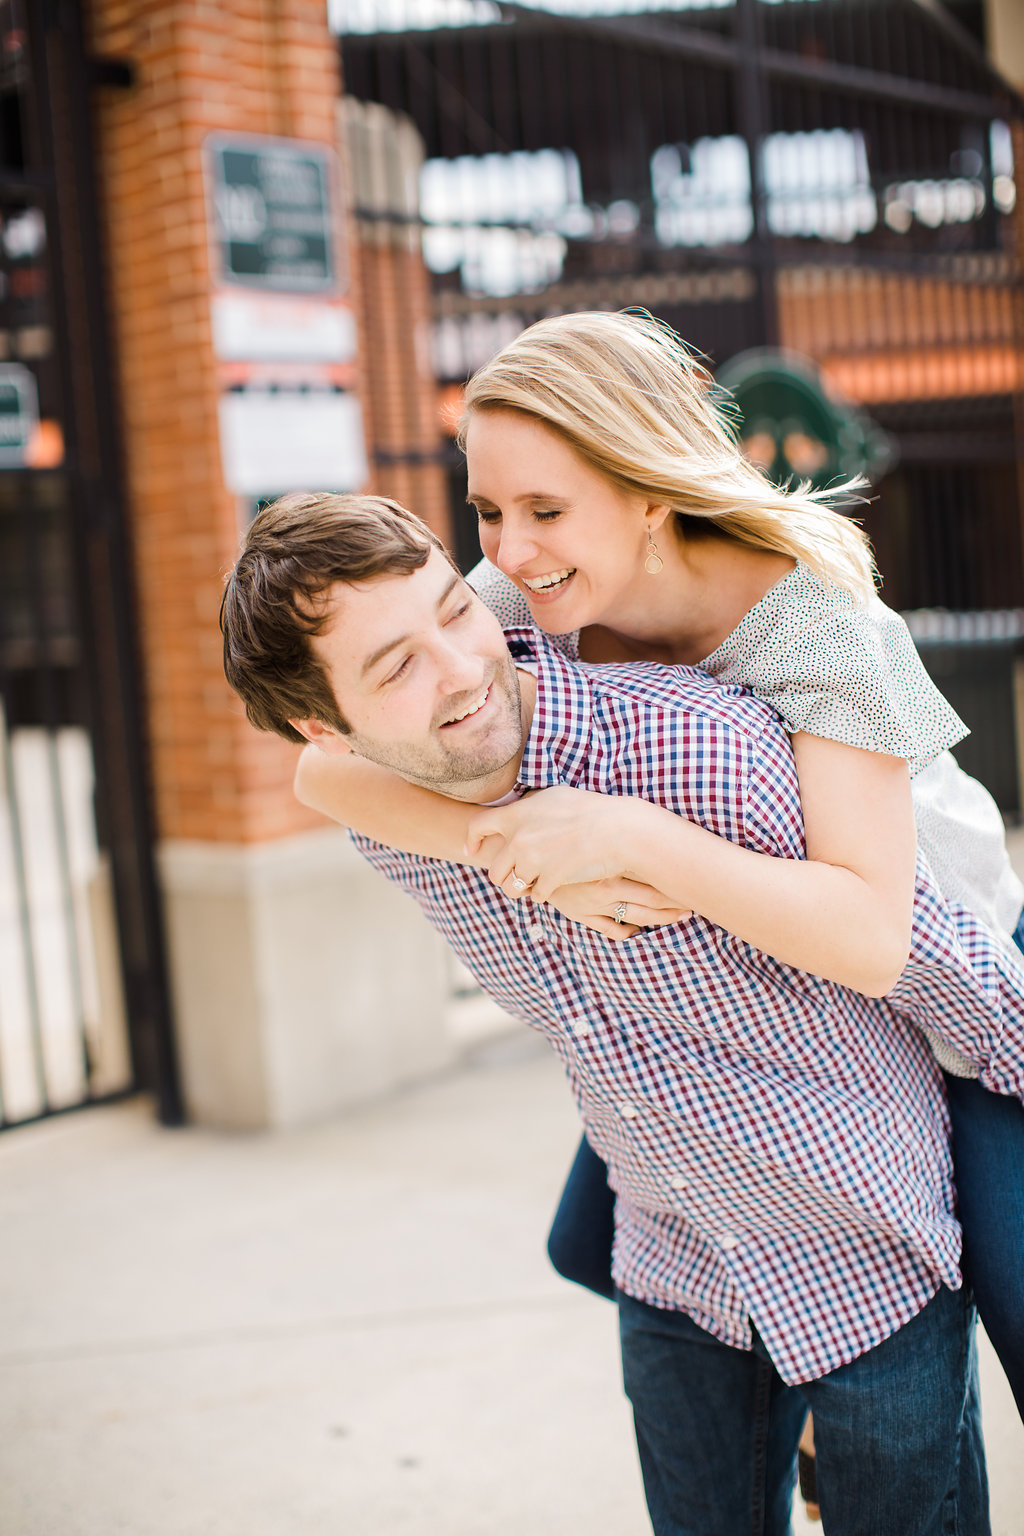 VnessPhotography_Jess&Andrew_Engaged-216.jpg